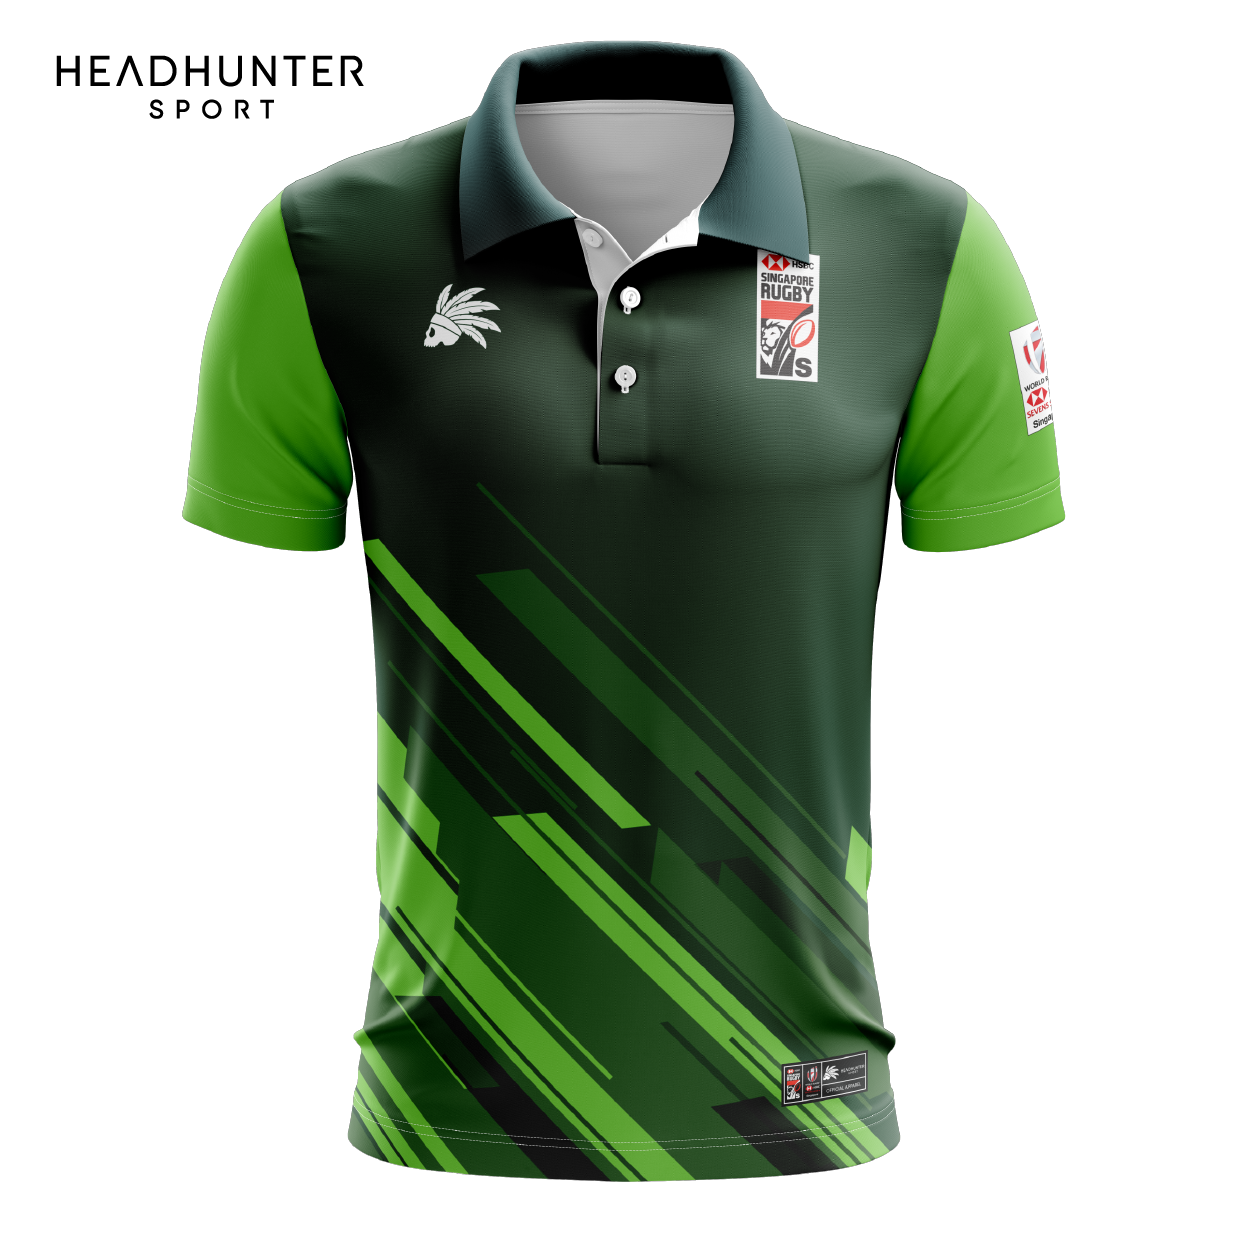 HSBC RUGBY 7S SERIES SINGAPORE 2019 MERCHANDISE SOUTH AFRICA POLO